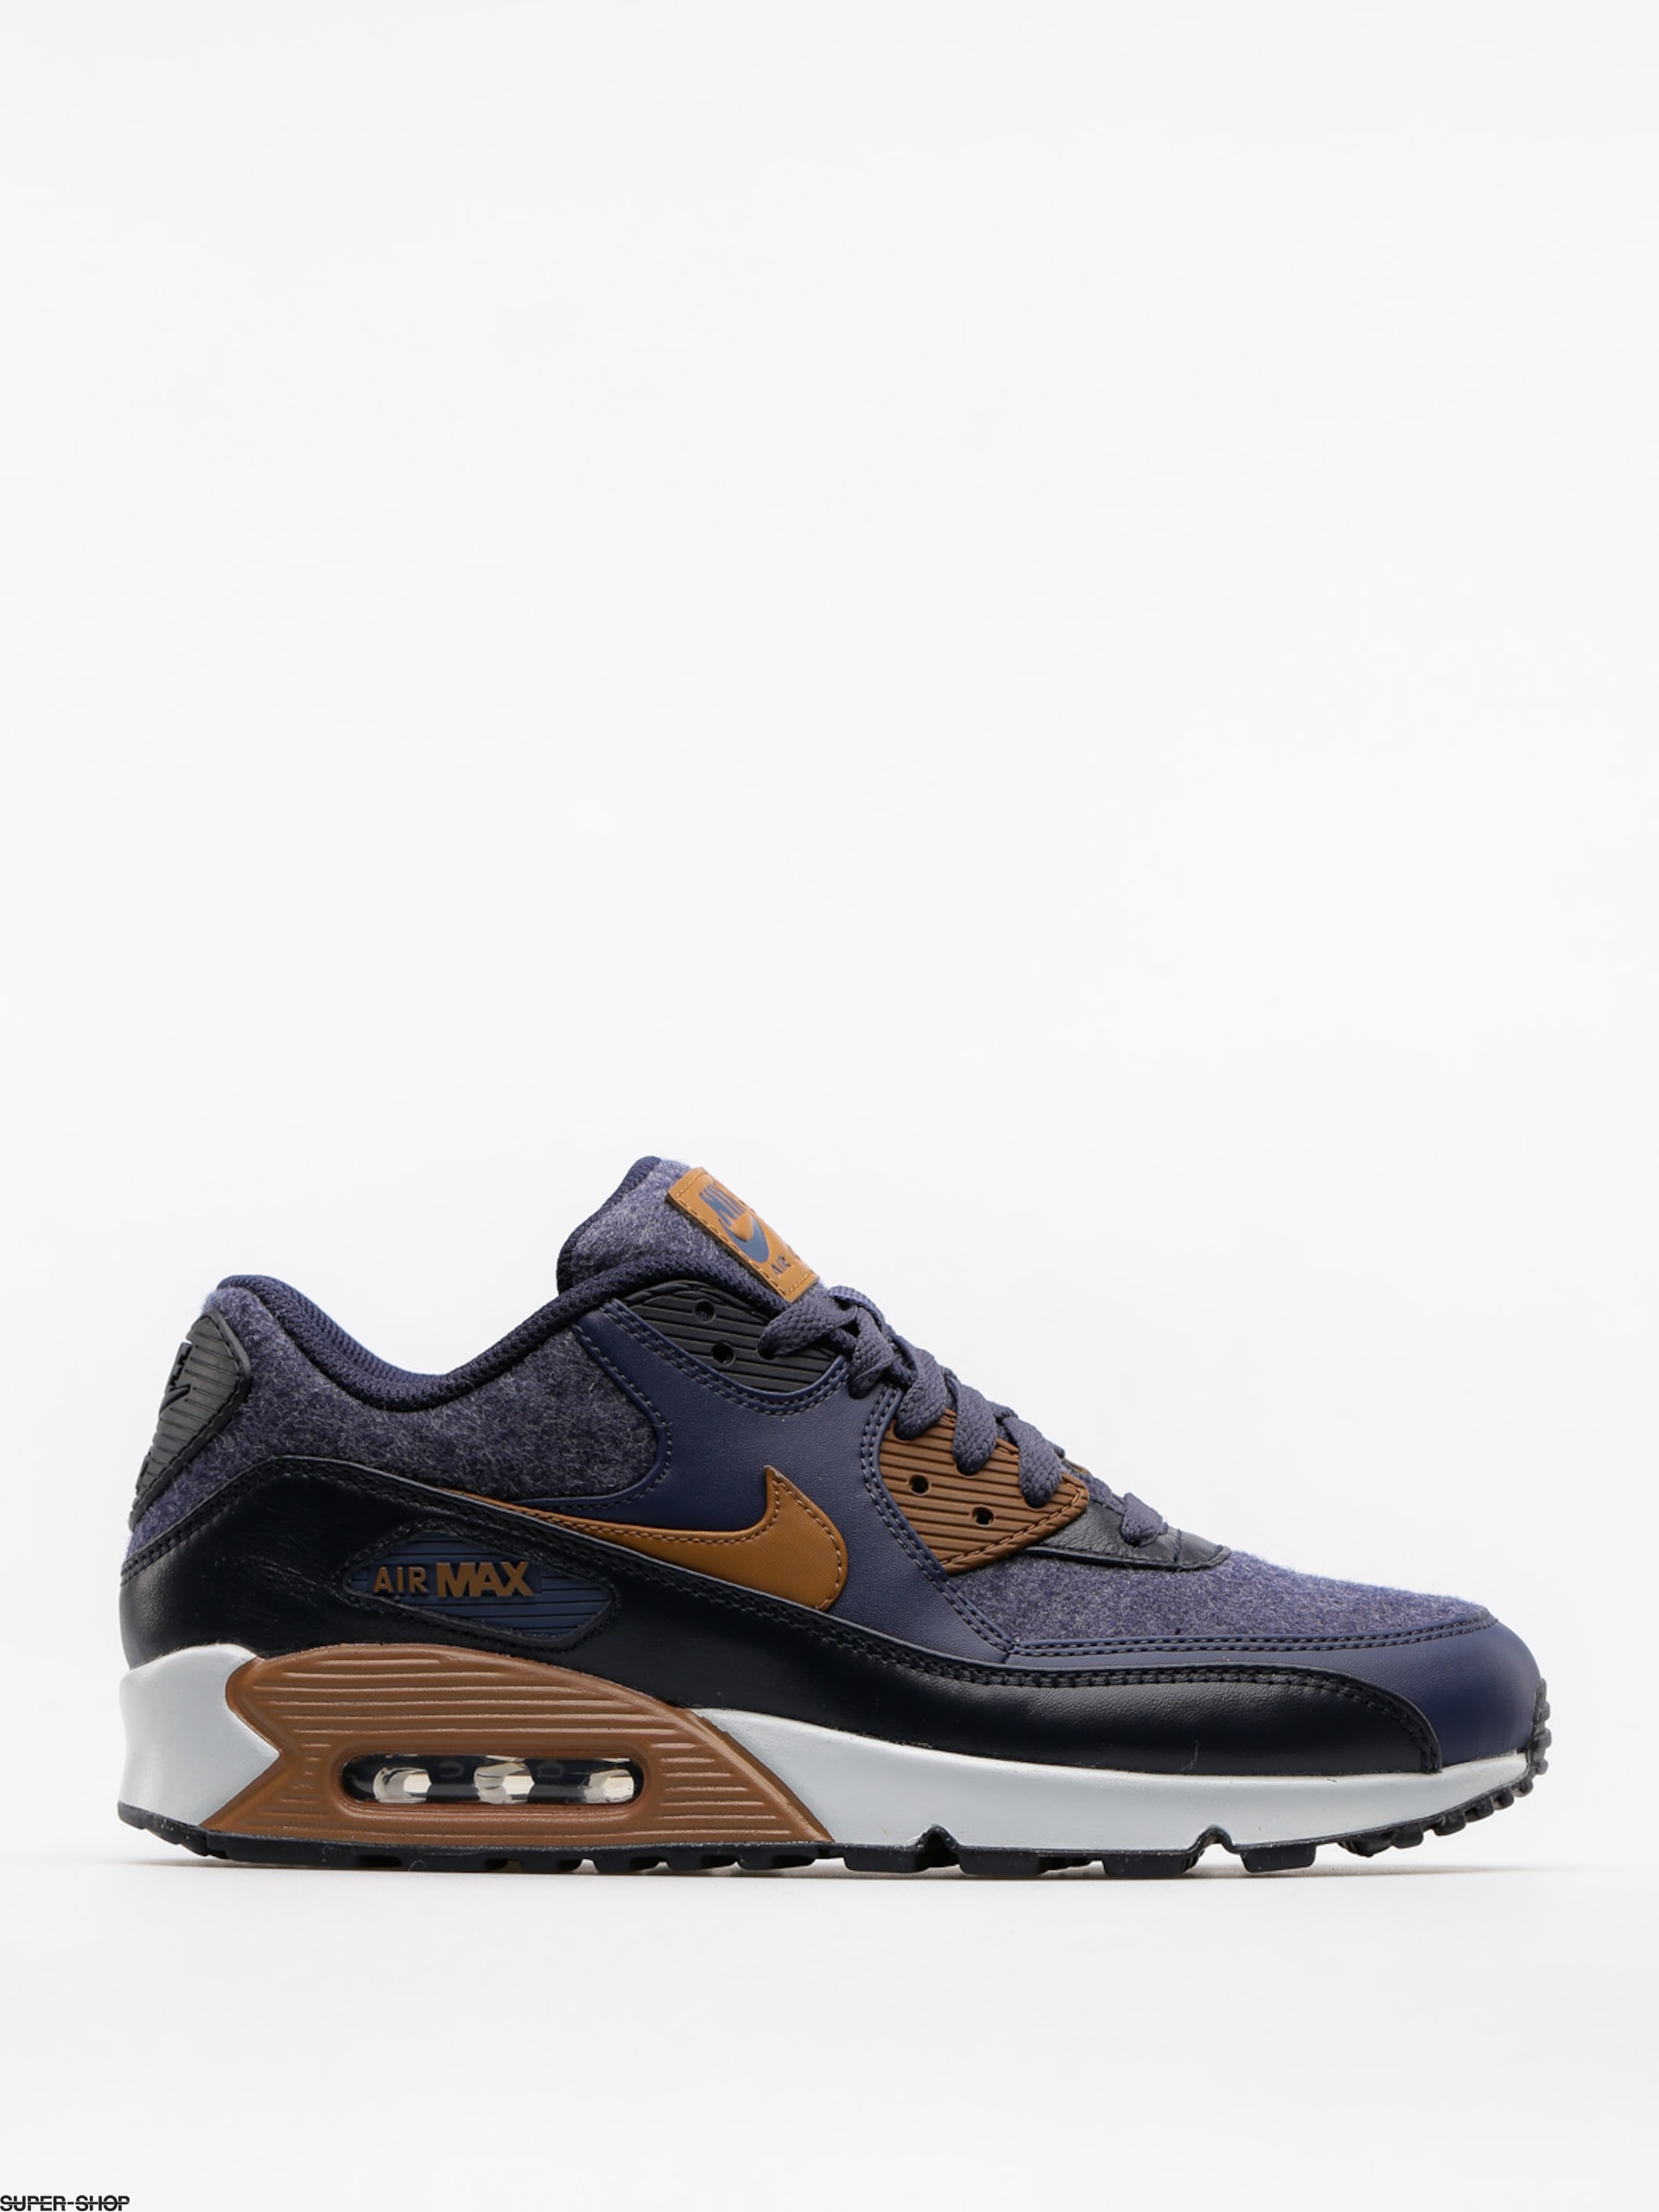 Nike Shoes Air Max 90 Premium